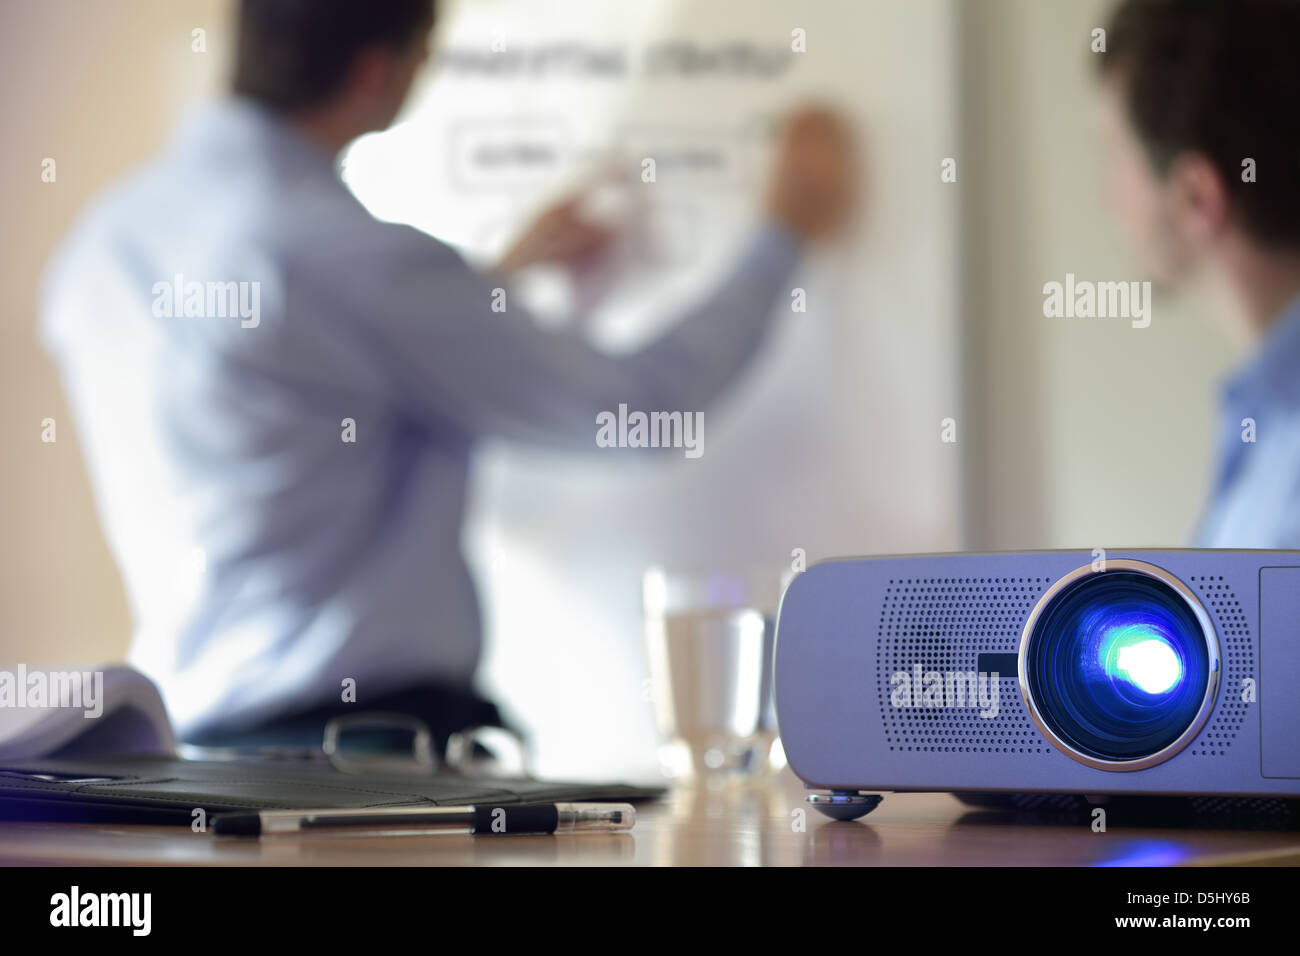 Presentation with lcd projector - Stock Image